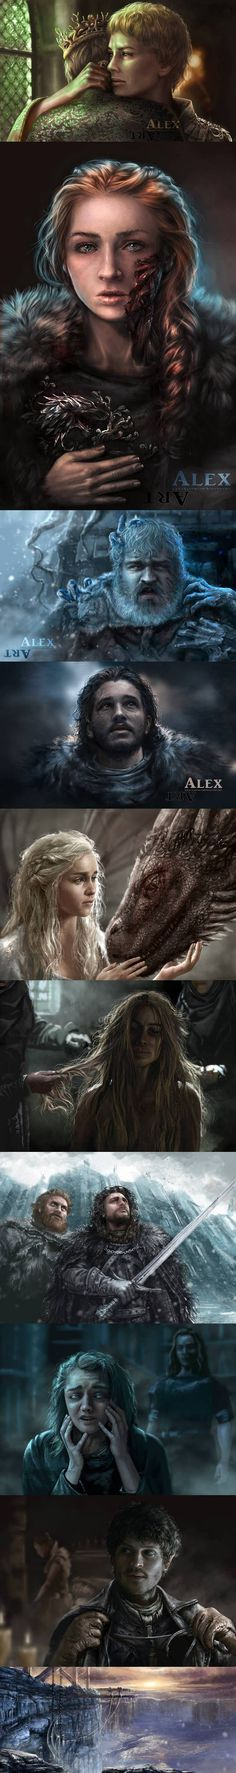 game of thrones alex art That is a great Ramsay painting. Valar Dohaeris, Valar Morghulis, Winter Is Here, Winter Is Coming, Got Game Of Thrones, Daenerys Targaryen, Game Of Trones, The North Remembers, Movies And Series